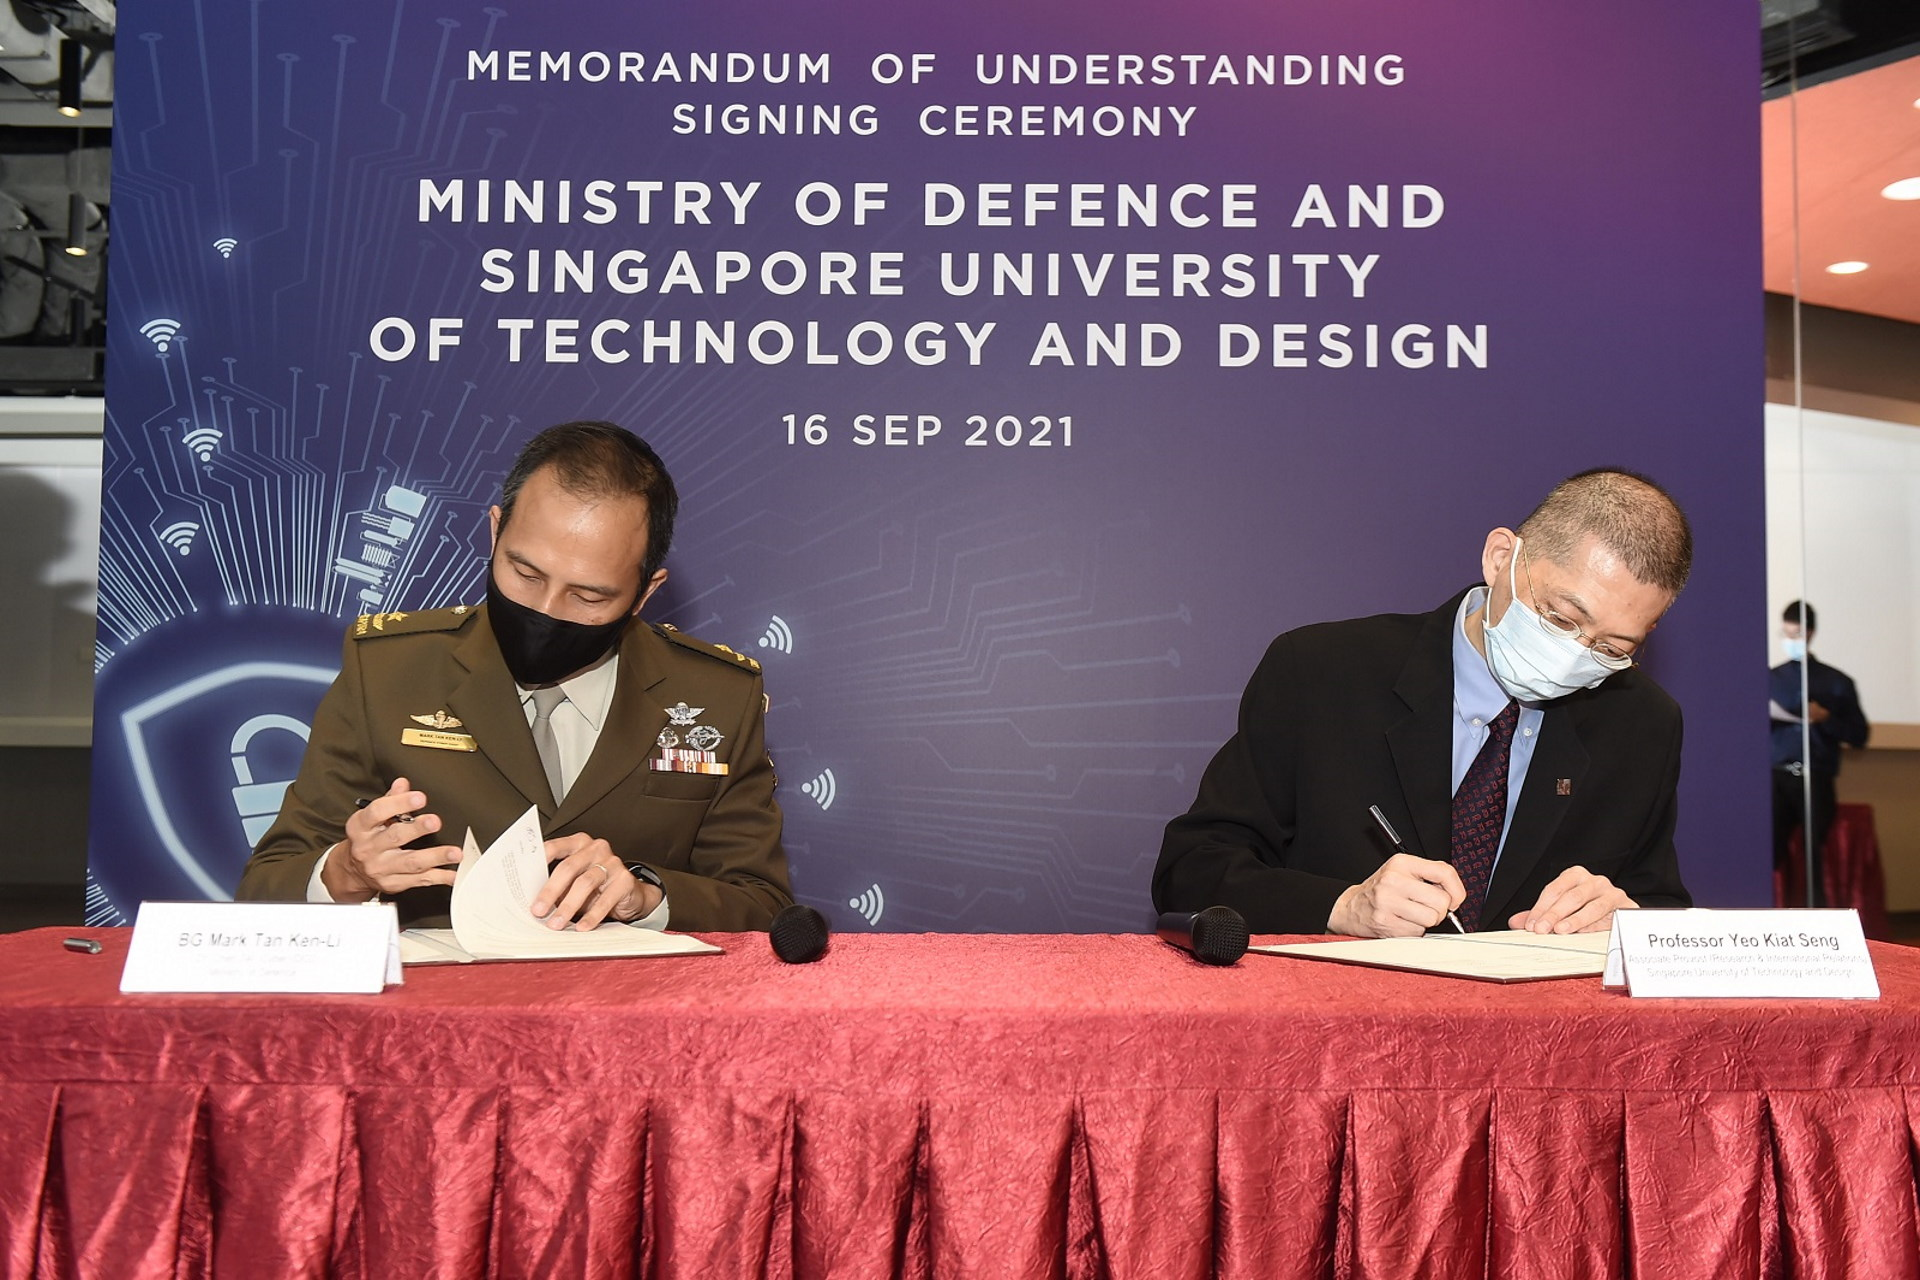 Defence Cyber Chief Brigadier-General Mark Tan (left) signing the Memorandum of Understanding with Singapore University of Technology and Design Associate Provost for Research & International Relations Professor Yeo Kiat Seng (right).